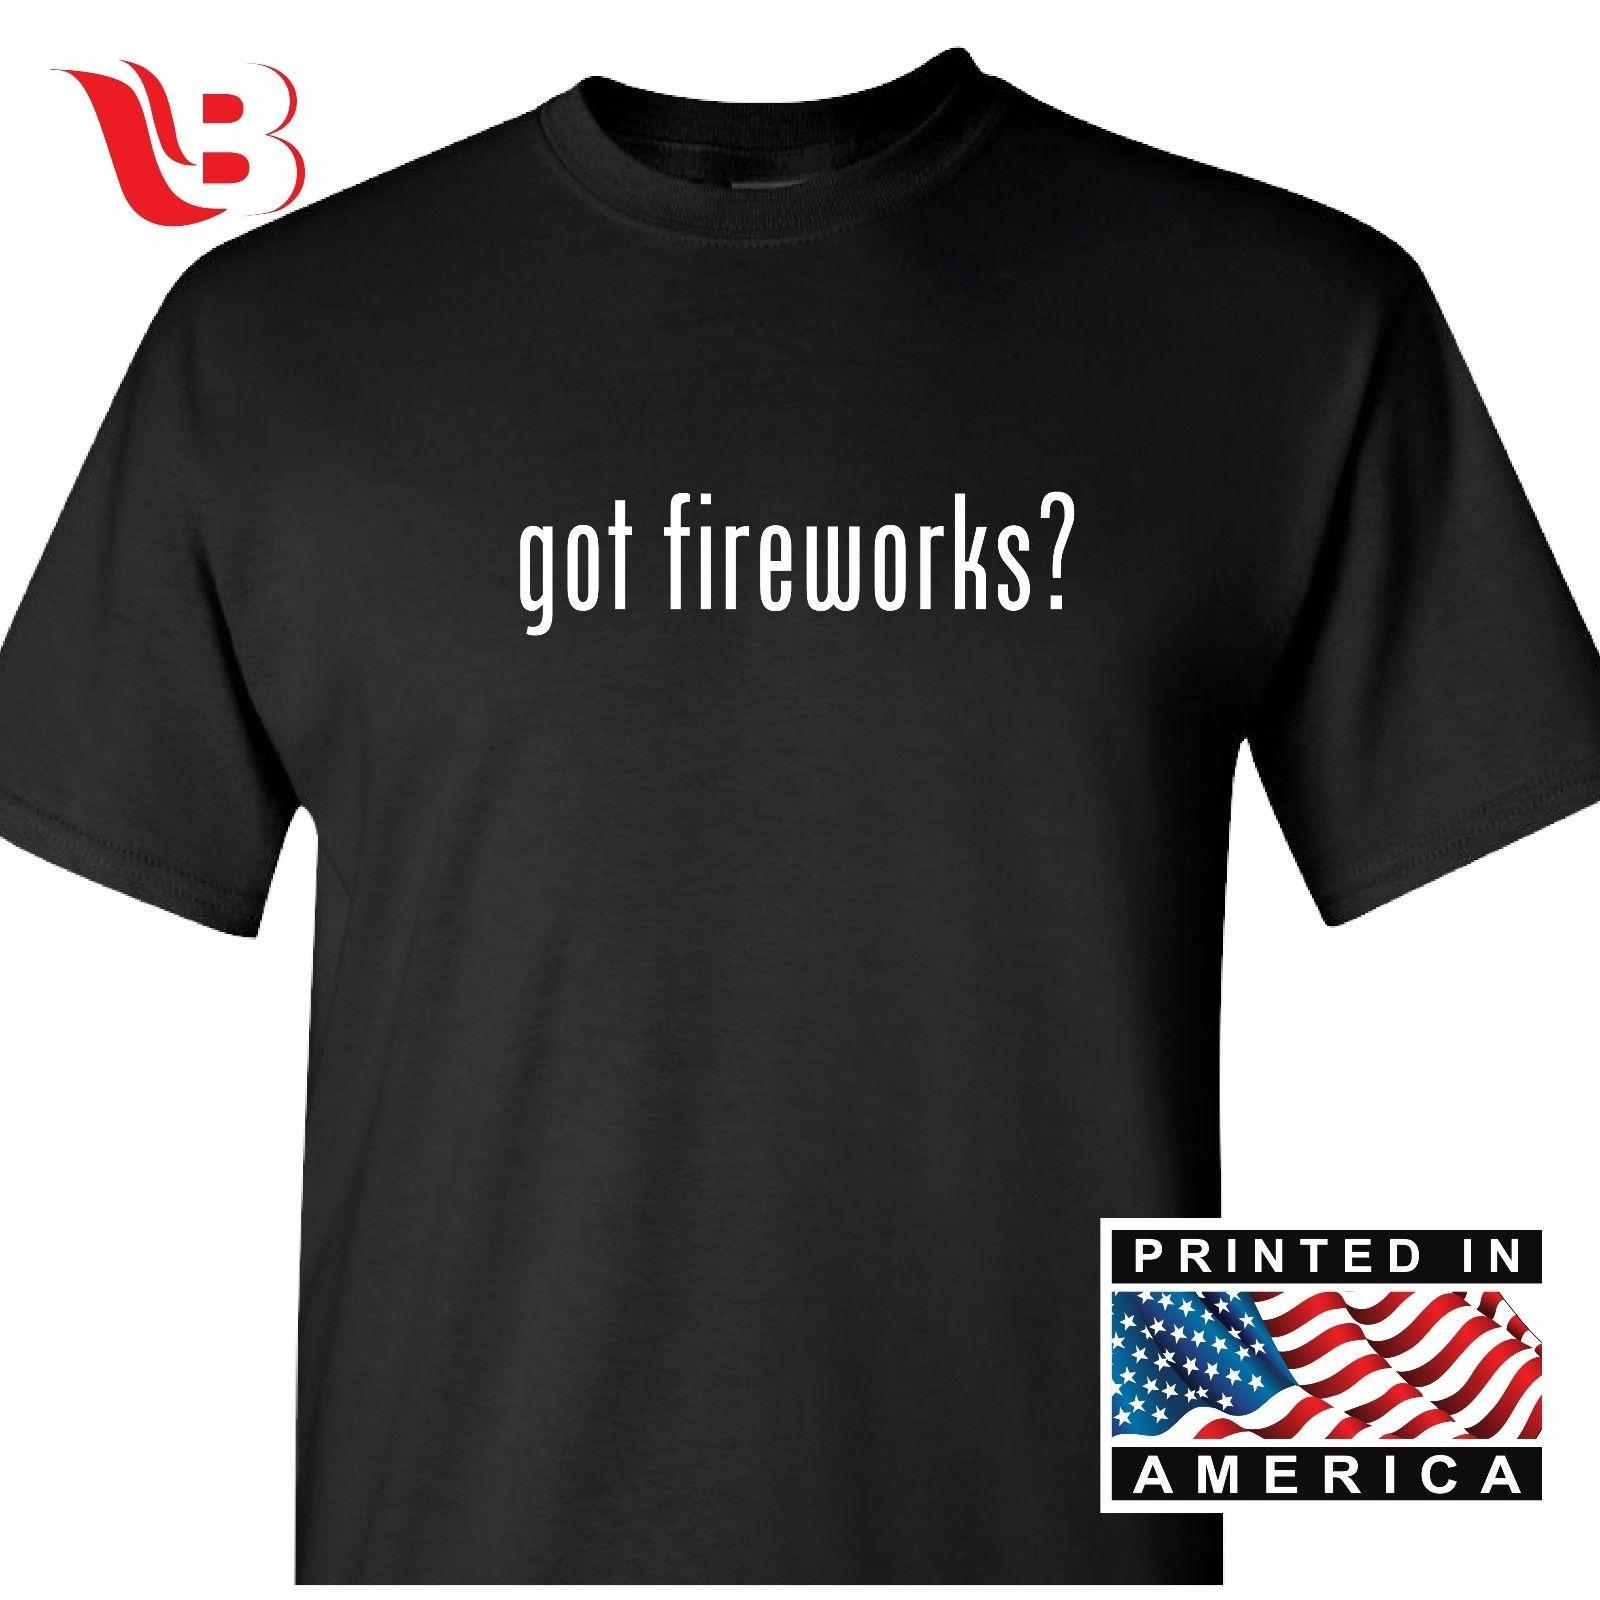 d45c414d Got Fireworks T Shirt ID4 Fourth Of July Fireworks 4th Funny Unisex Casual  Tshirt Top Best Tee Shirt Sites Online Funky T Shirts From Mvptshirt, ...